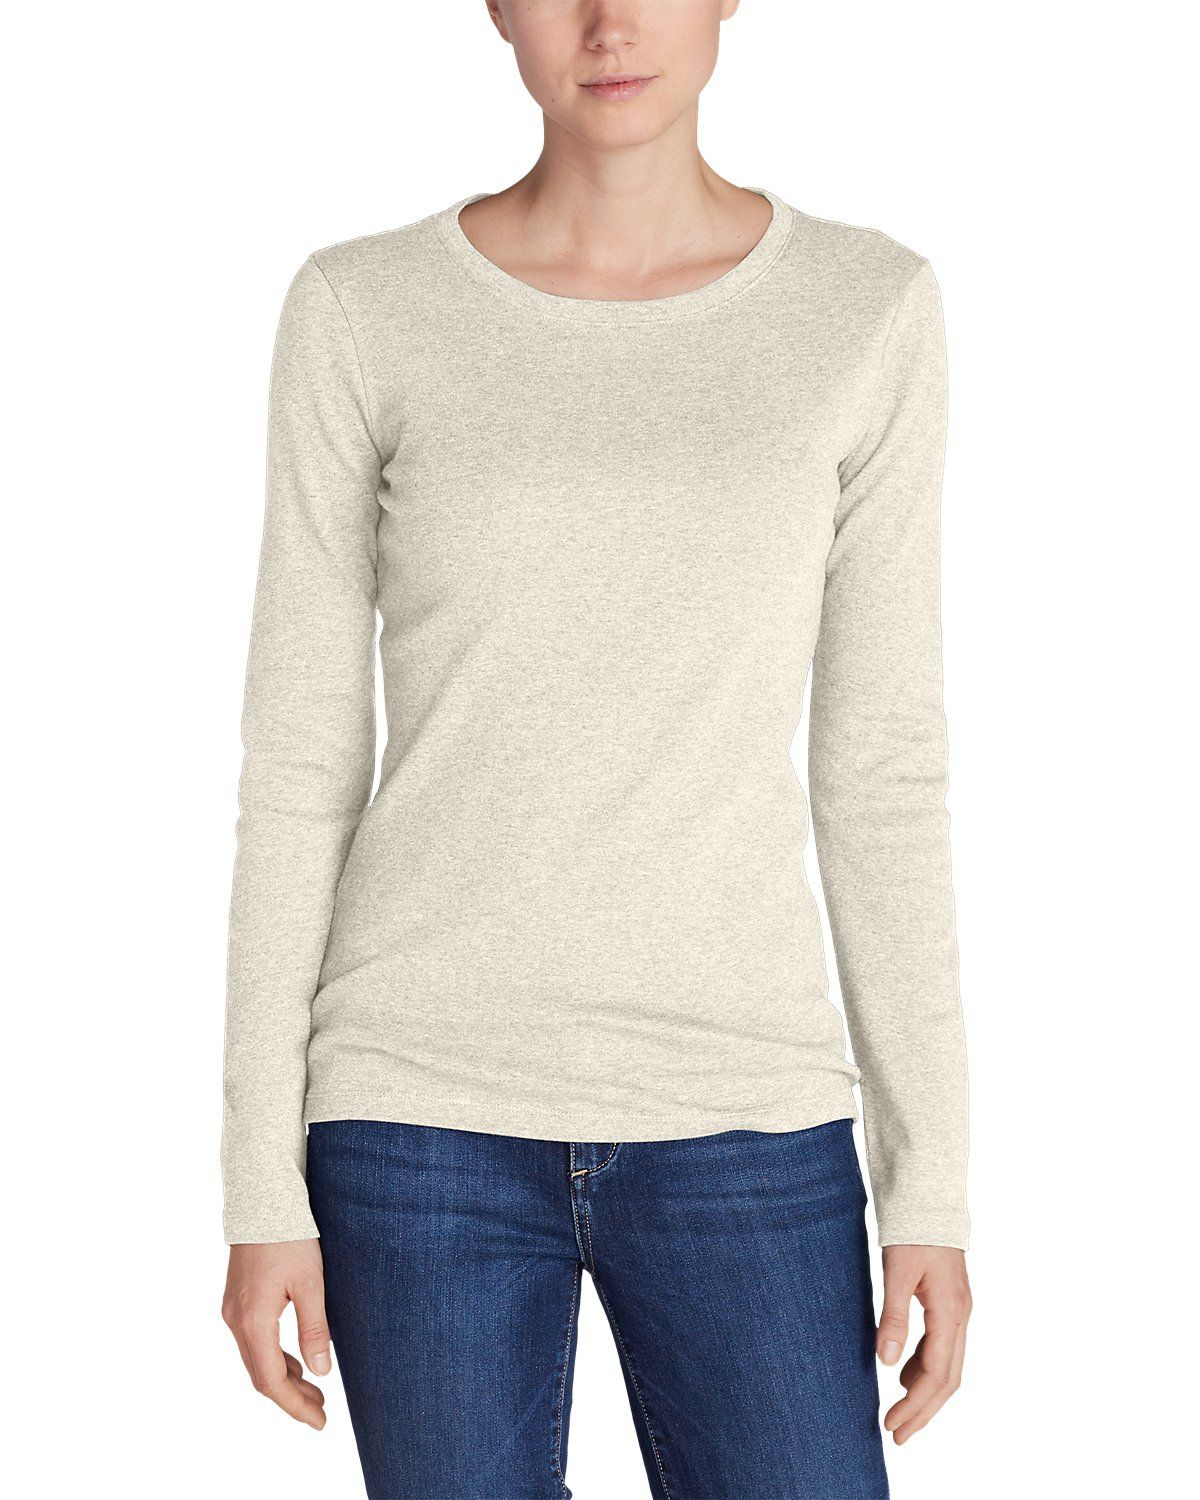 Women's Favorite Long sleeve Crewneck T shirt | Eddie Bauer